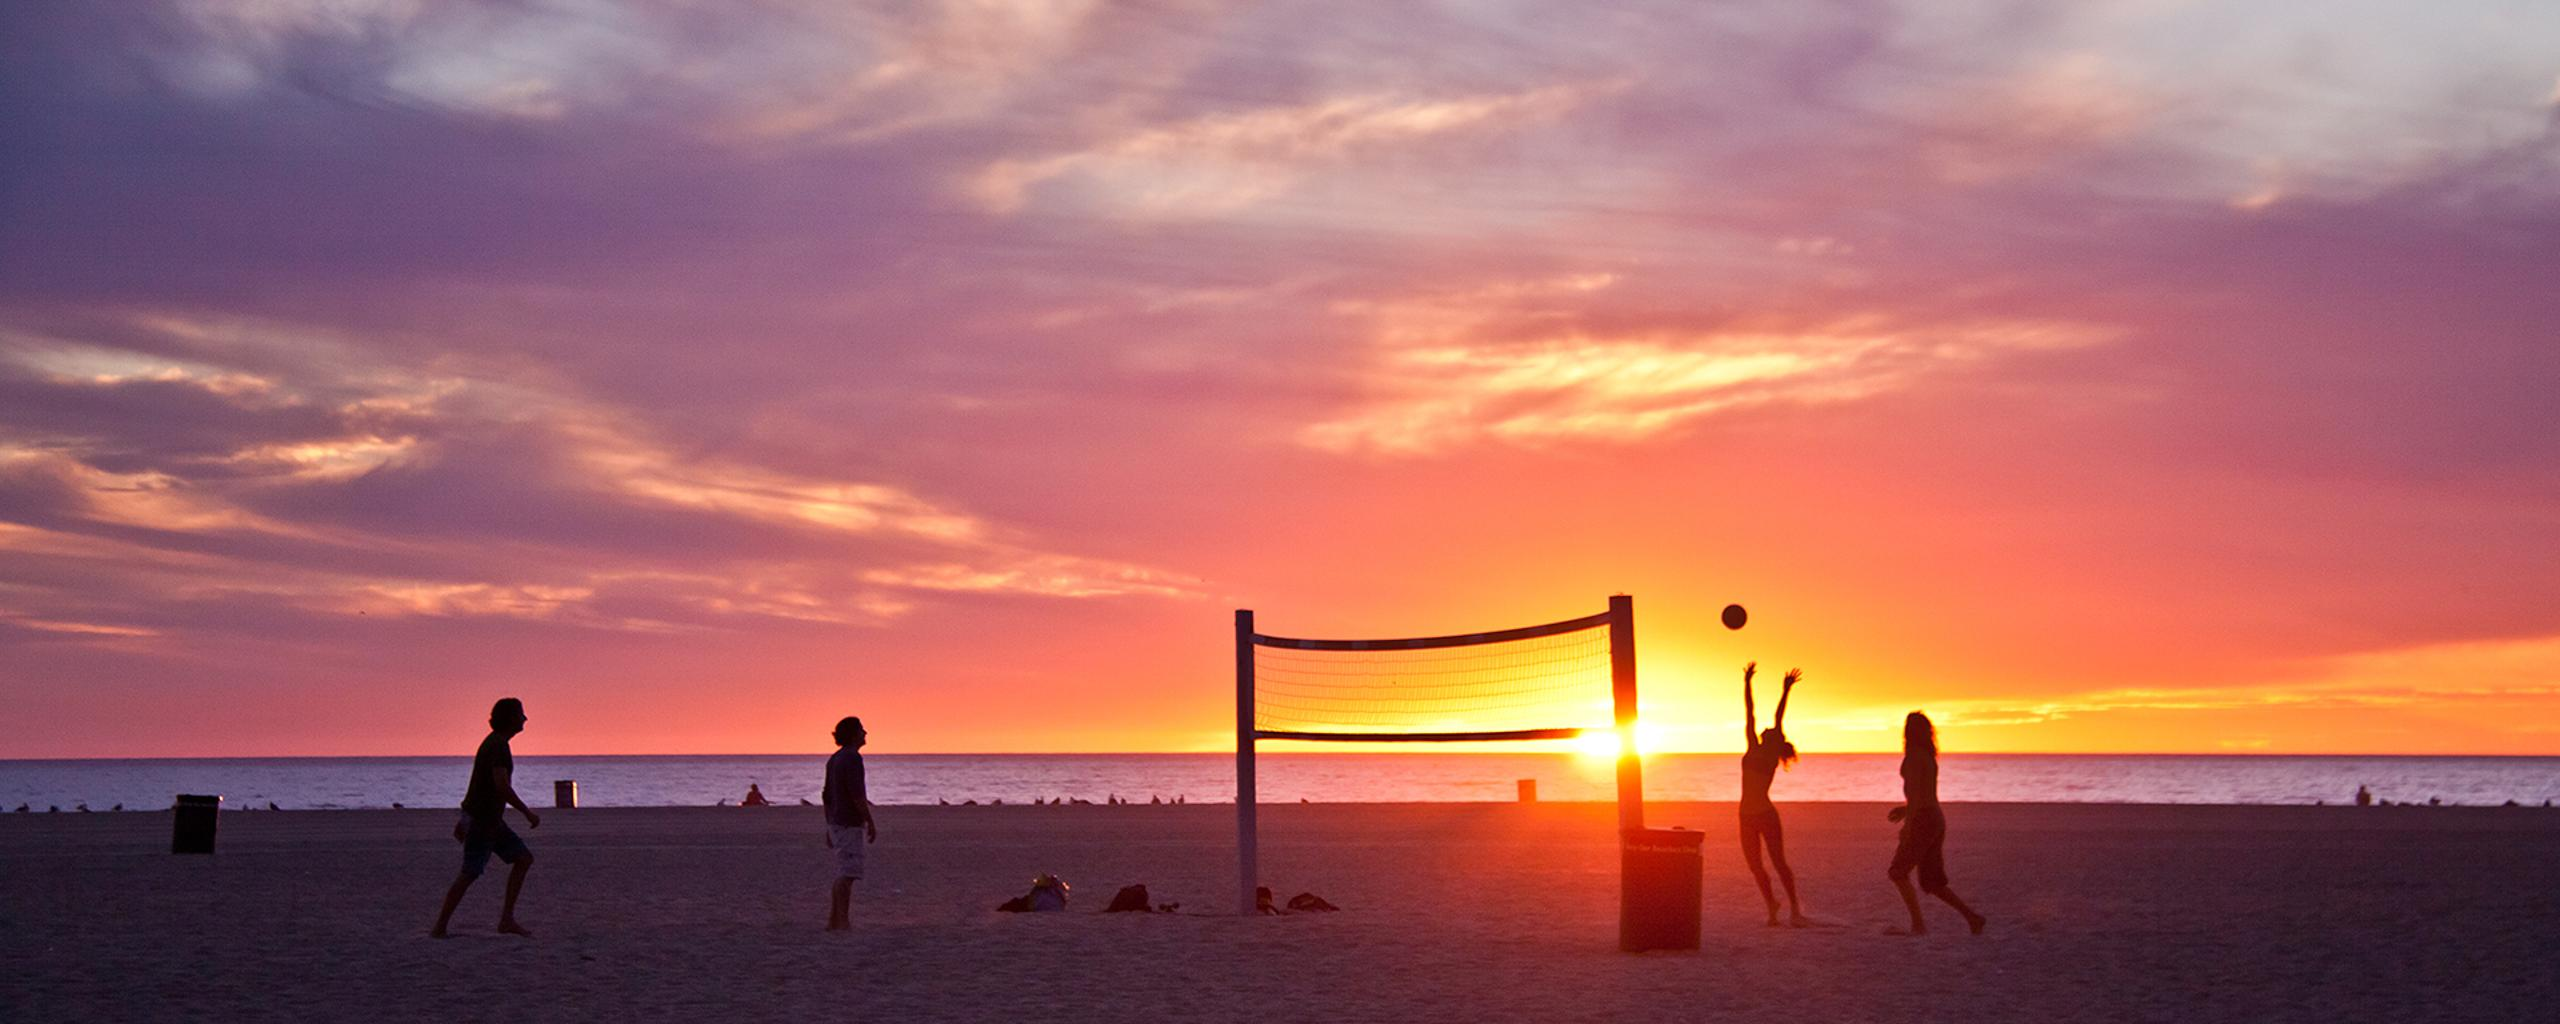 Download Wallpaper 2560x1024 Volleyball on beach, sunset